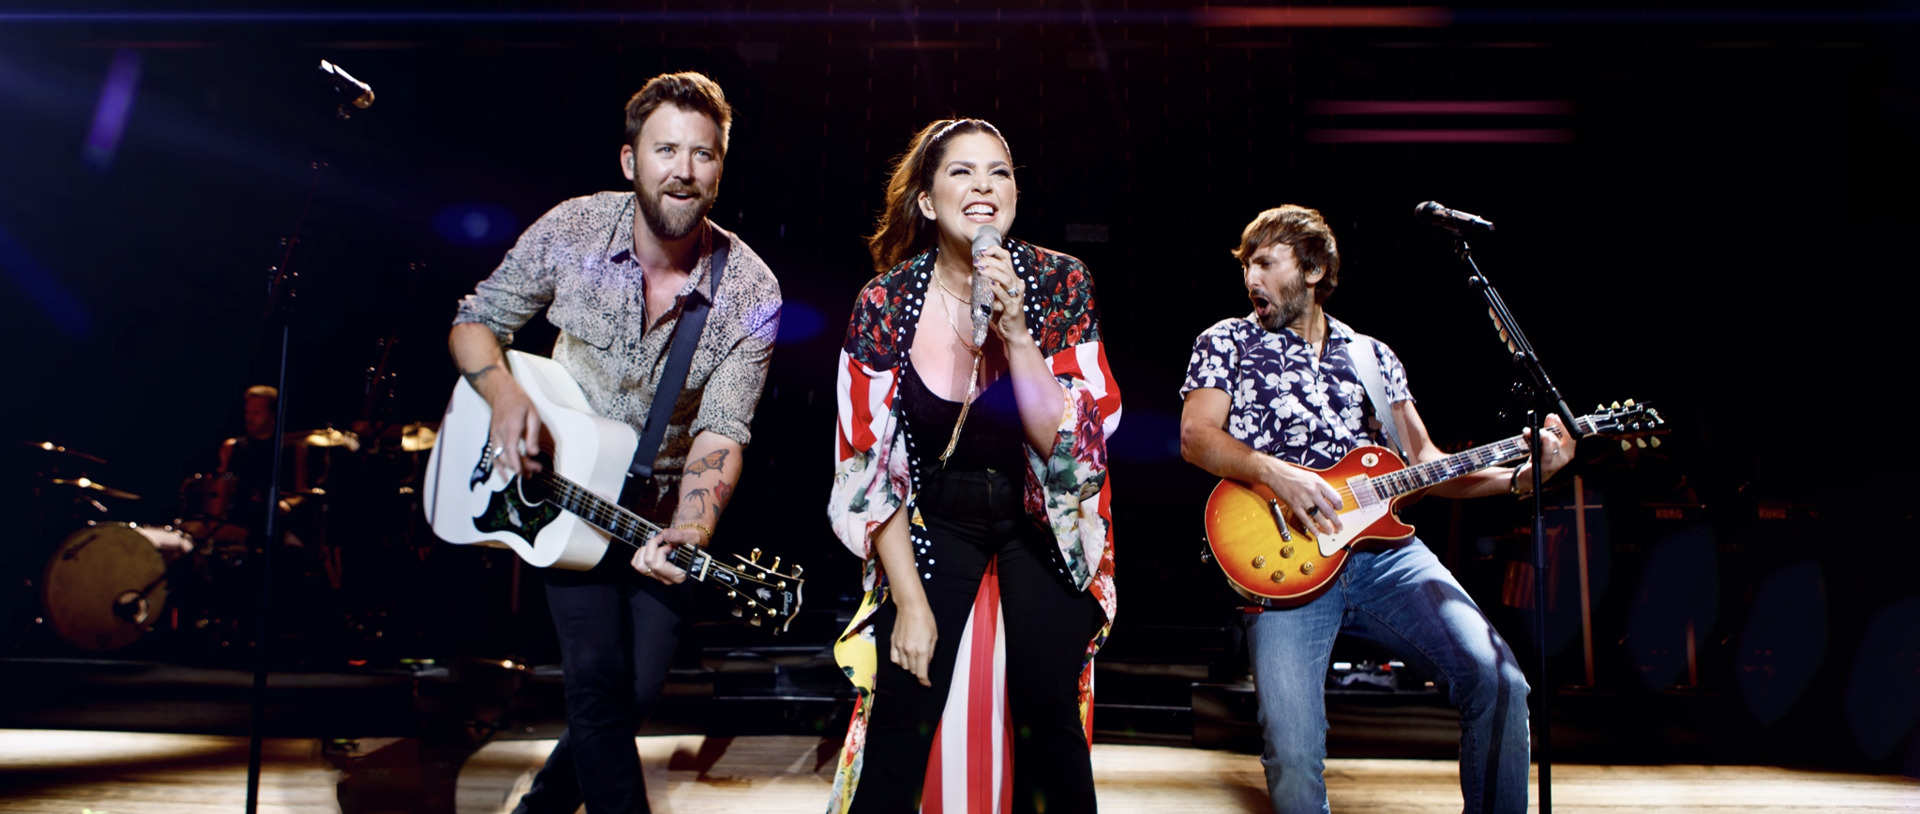 """Lady A Shows """"WHAT A SONG CAN DO"""" on its Multi-City Tour, with New Sennheiser MM 445 Capsules"""